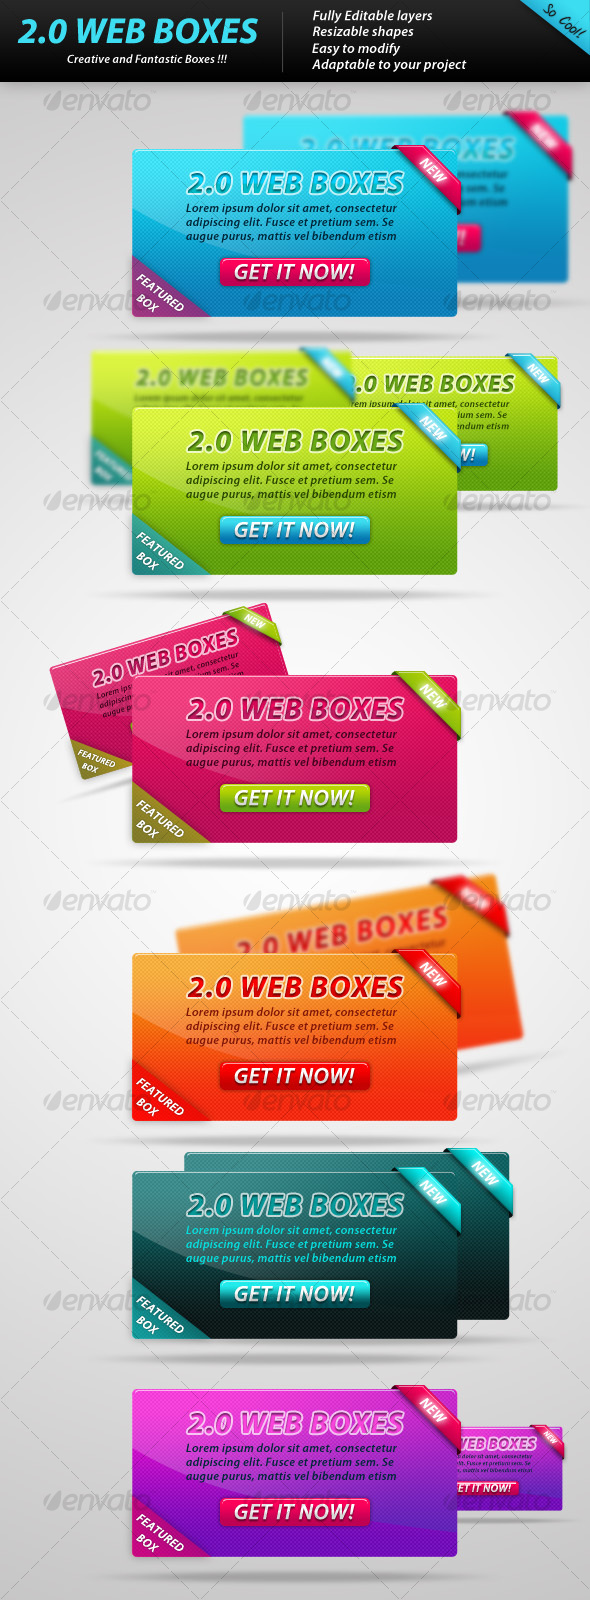 GraphicRiver 2.0 WEB BOXES 108652